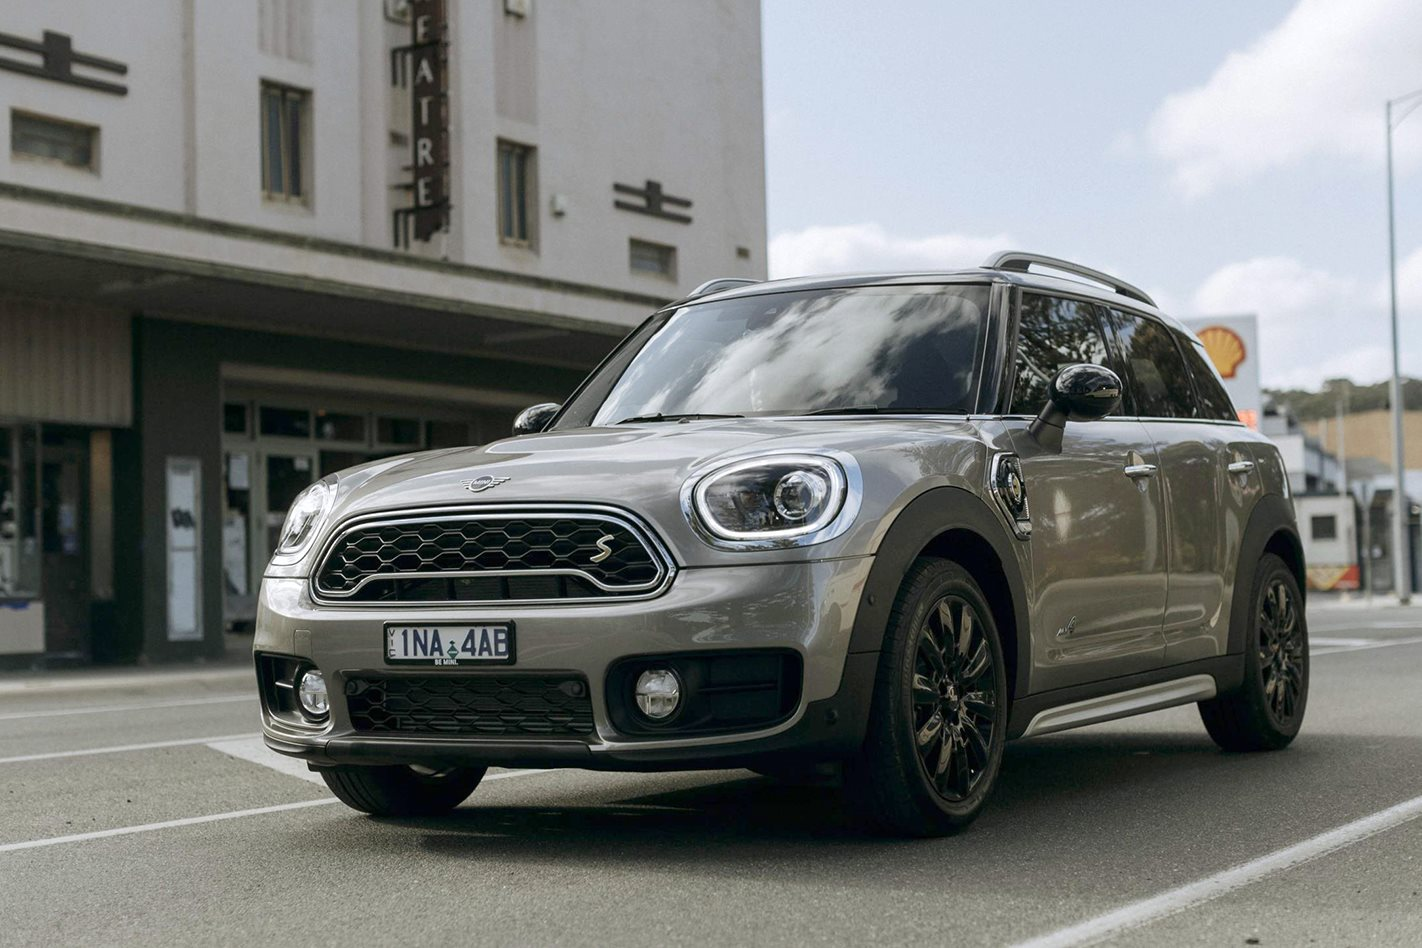 2019 Mini Countryman Plug In Hybrid Price And Features Announced